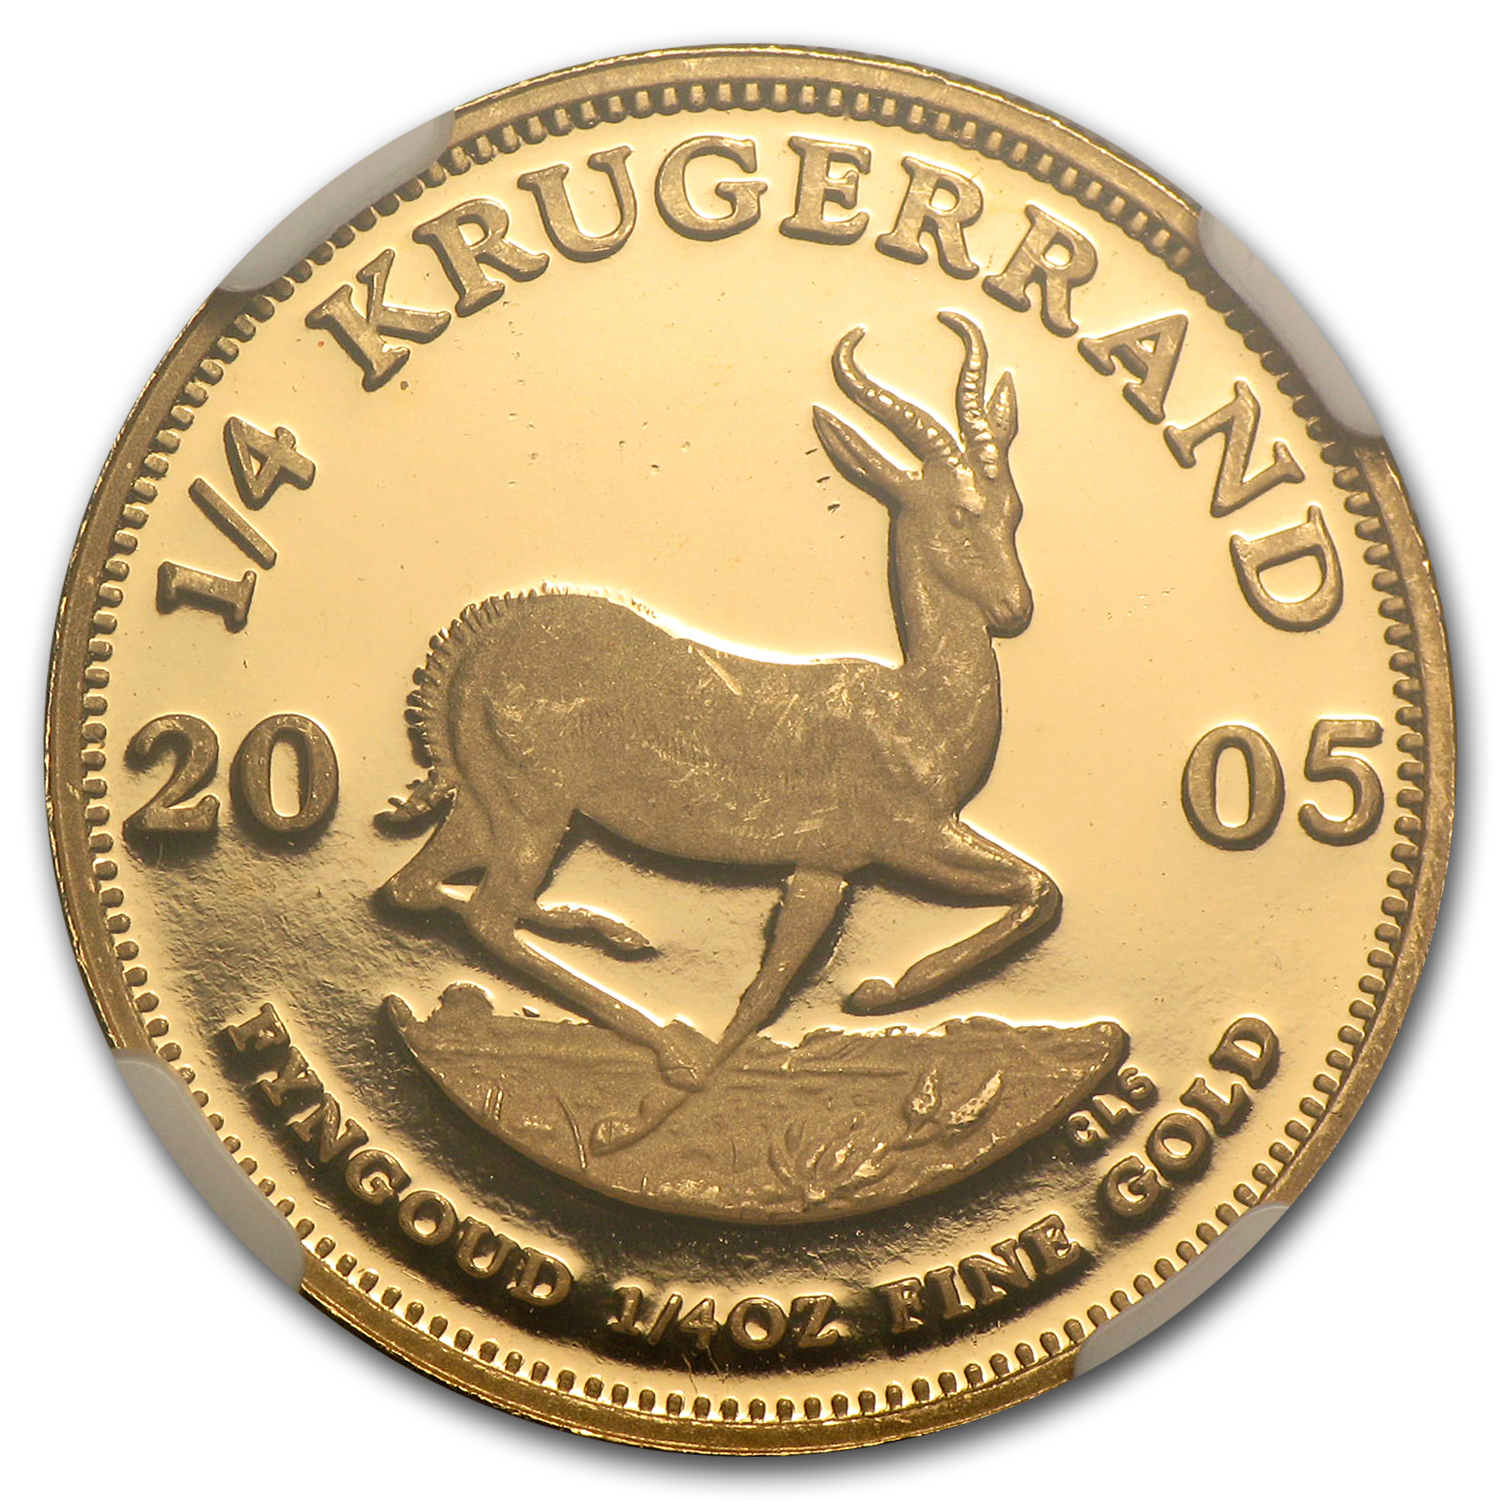 2005 1/4 oz Gold South African Krugerrand PF-66 NGC